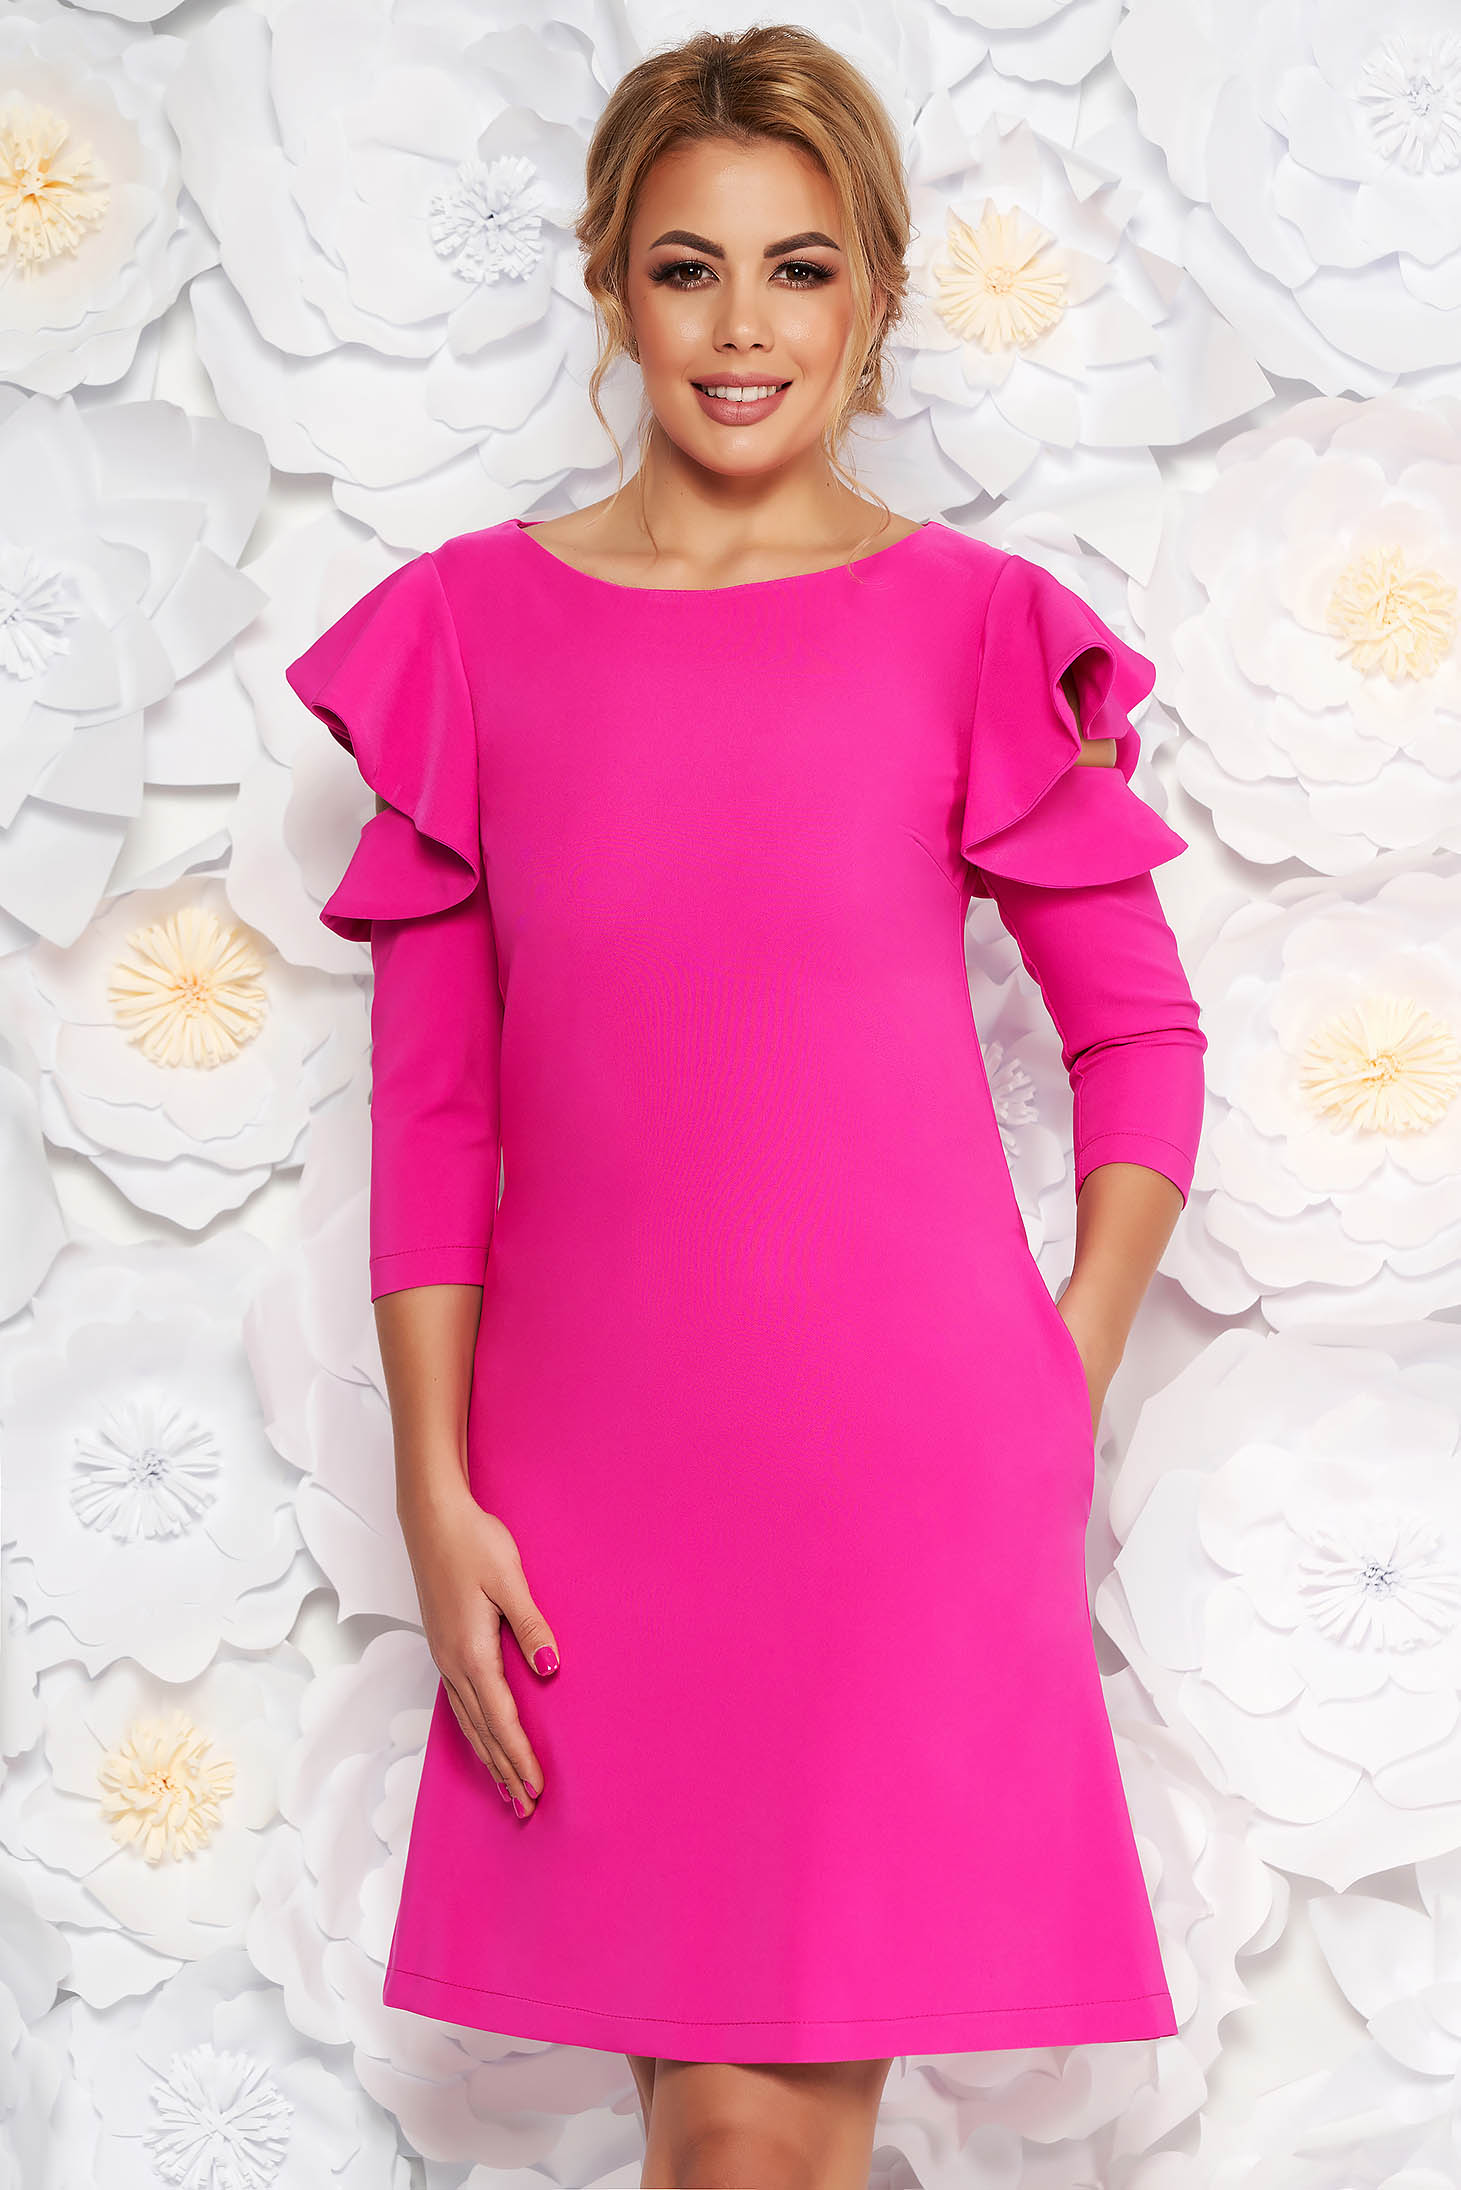 Pink daily elegant a-line dress slightly elastic fabric with ruffled sleeves